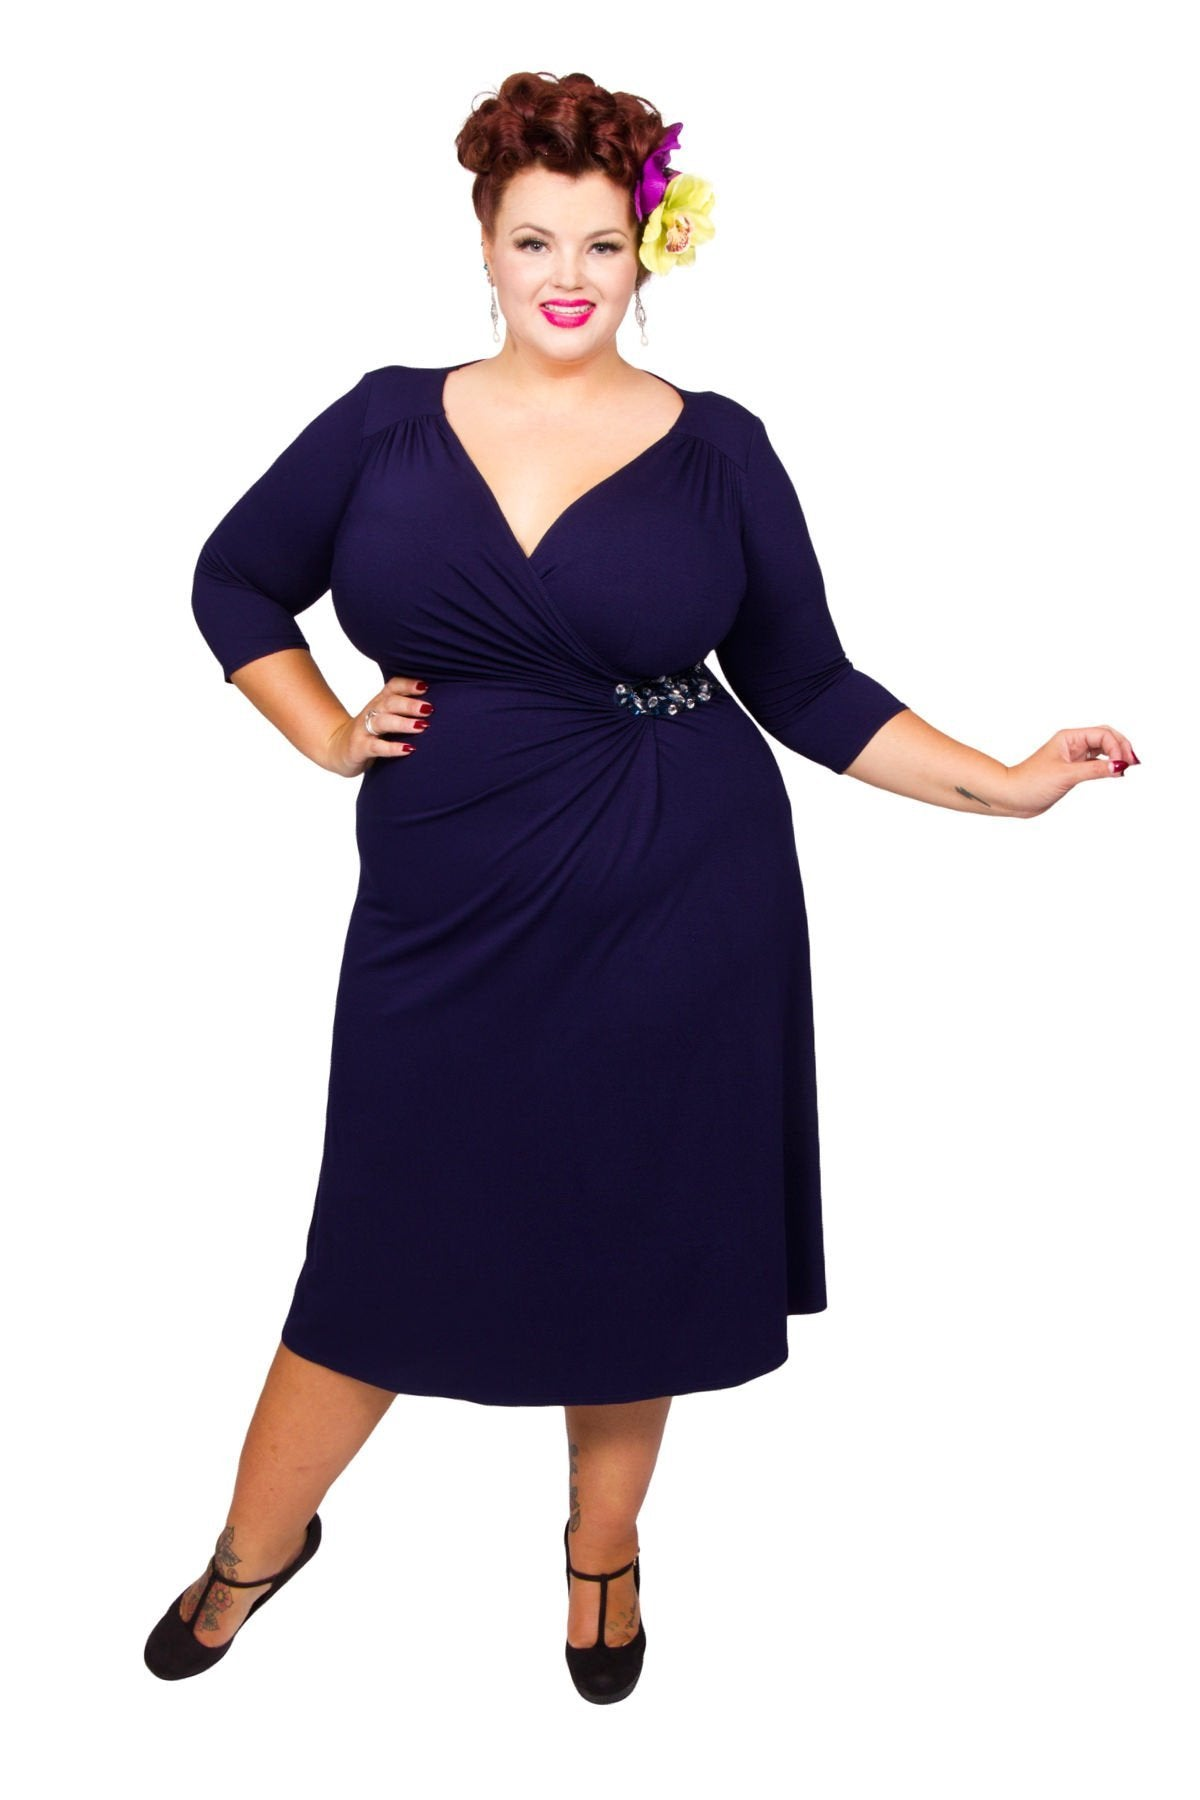 Swing Dance Clothing You Can Dance In Side Beaded Jersey Dress - Midnight  14 £70.00 AT vintagedancer.com